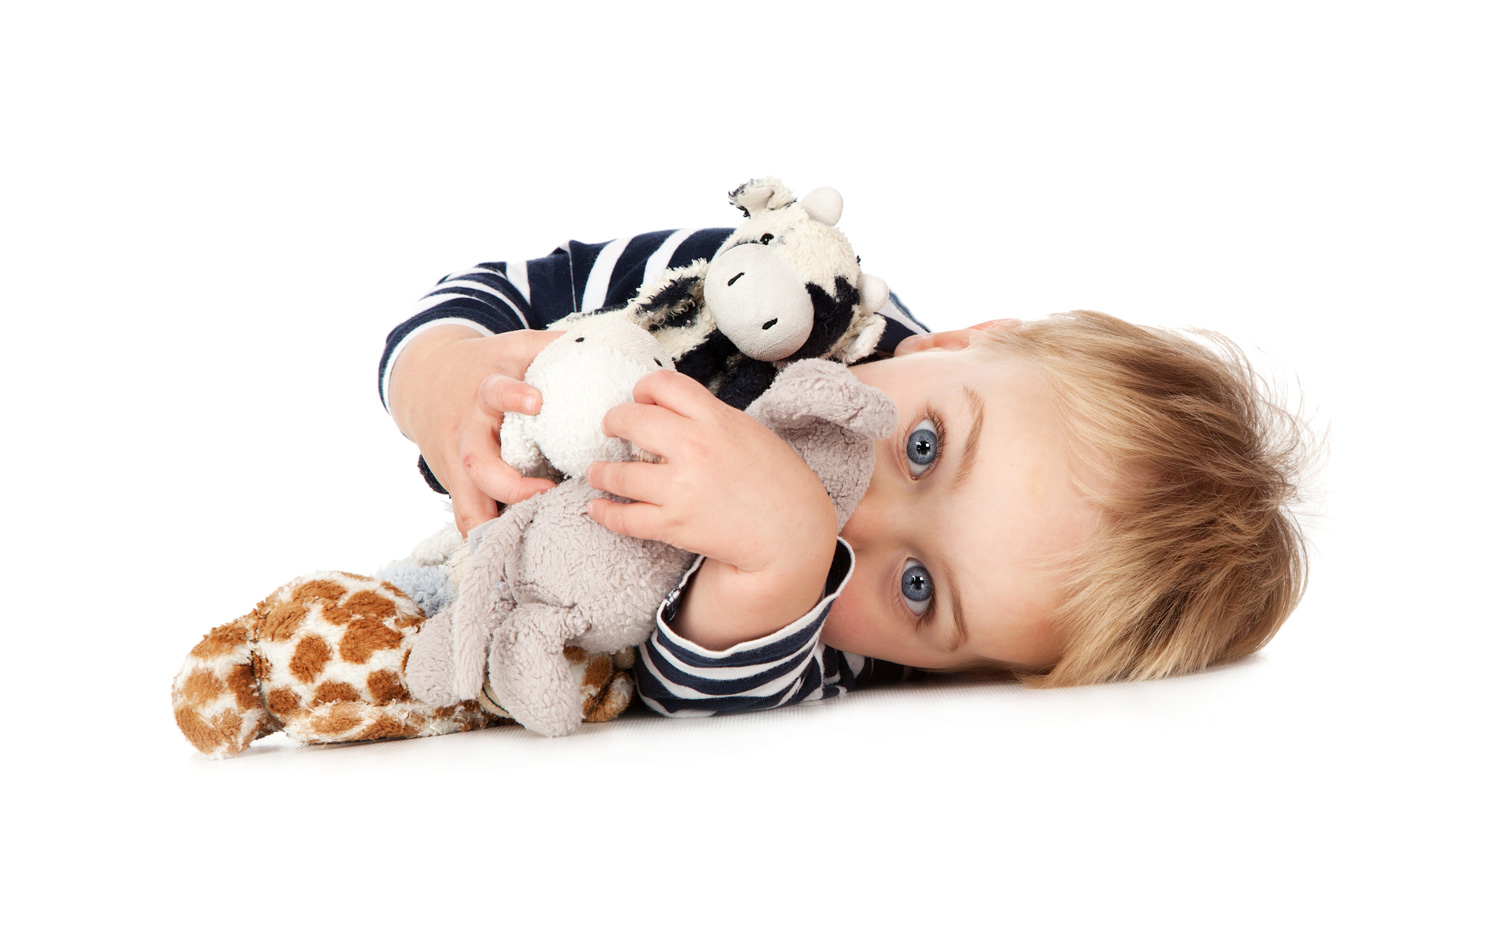 Baby_Toddler_Portrait_Photographer_Newbury_Berkshire_019.jpg